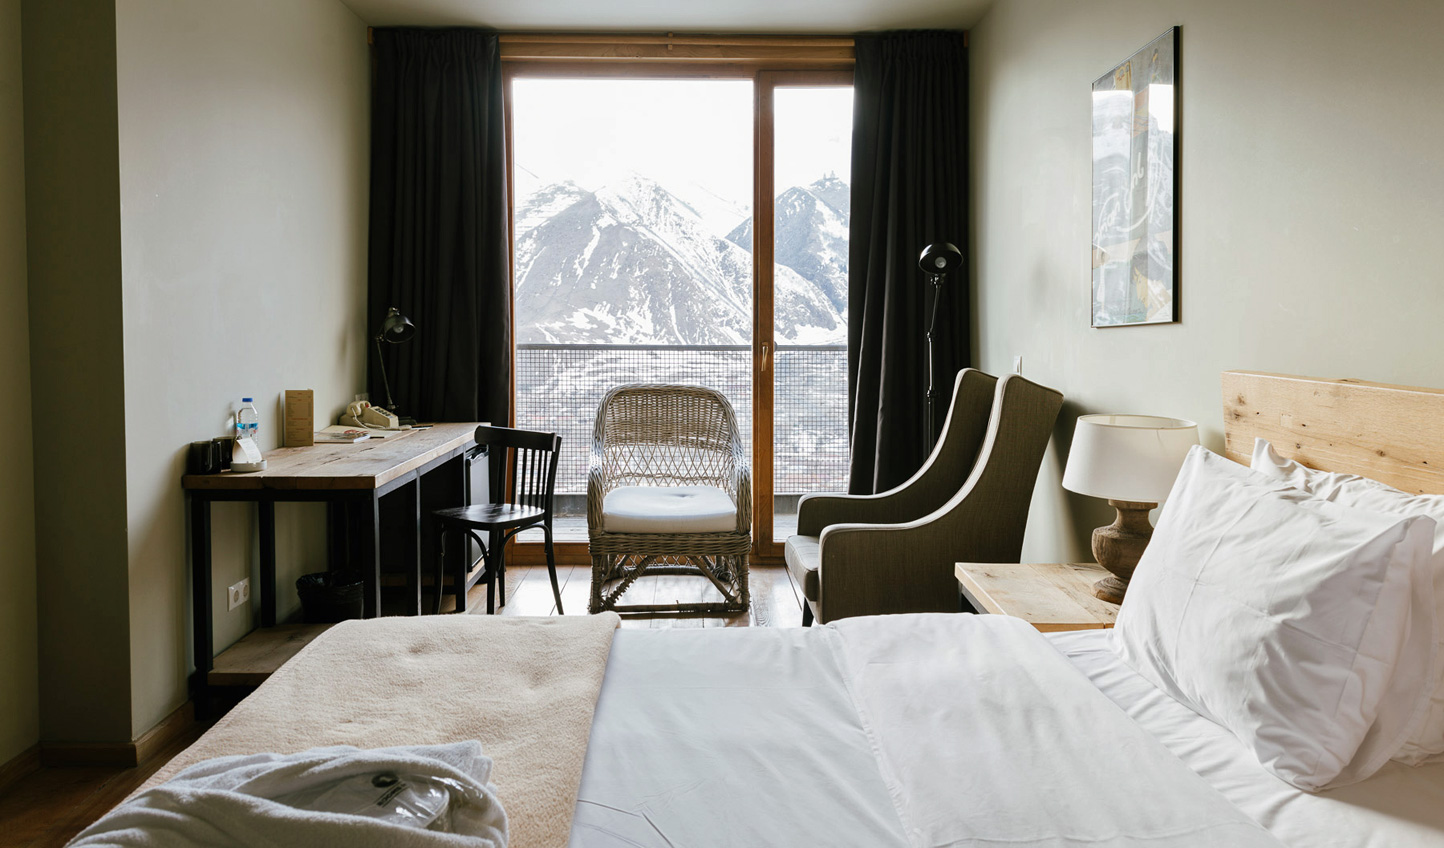 Wake up to otherworldly views of the Caucasus Mountains